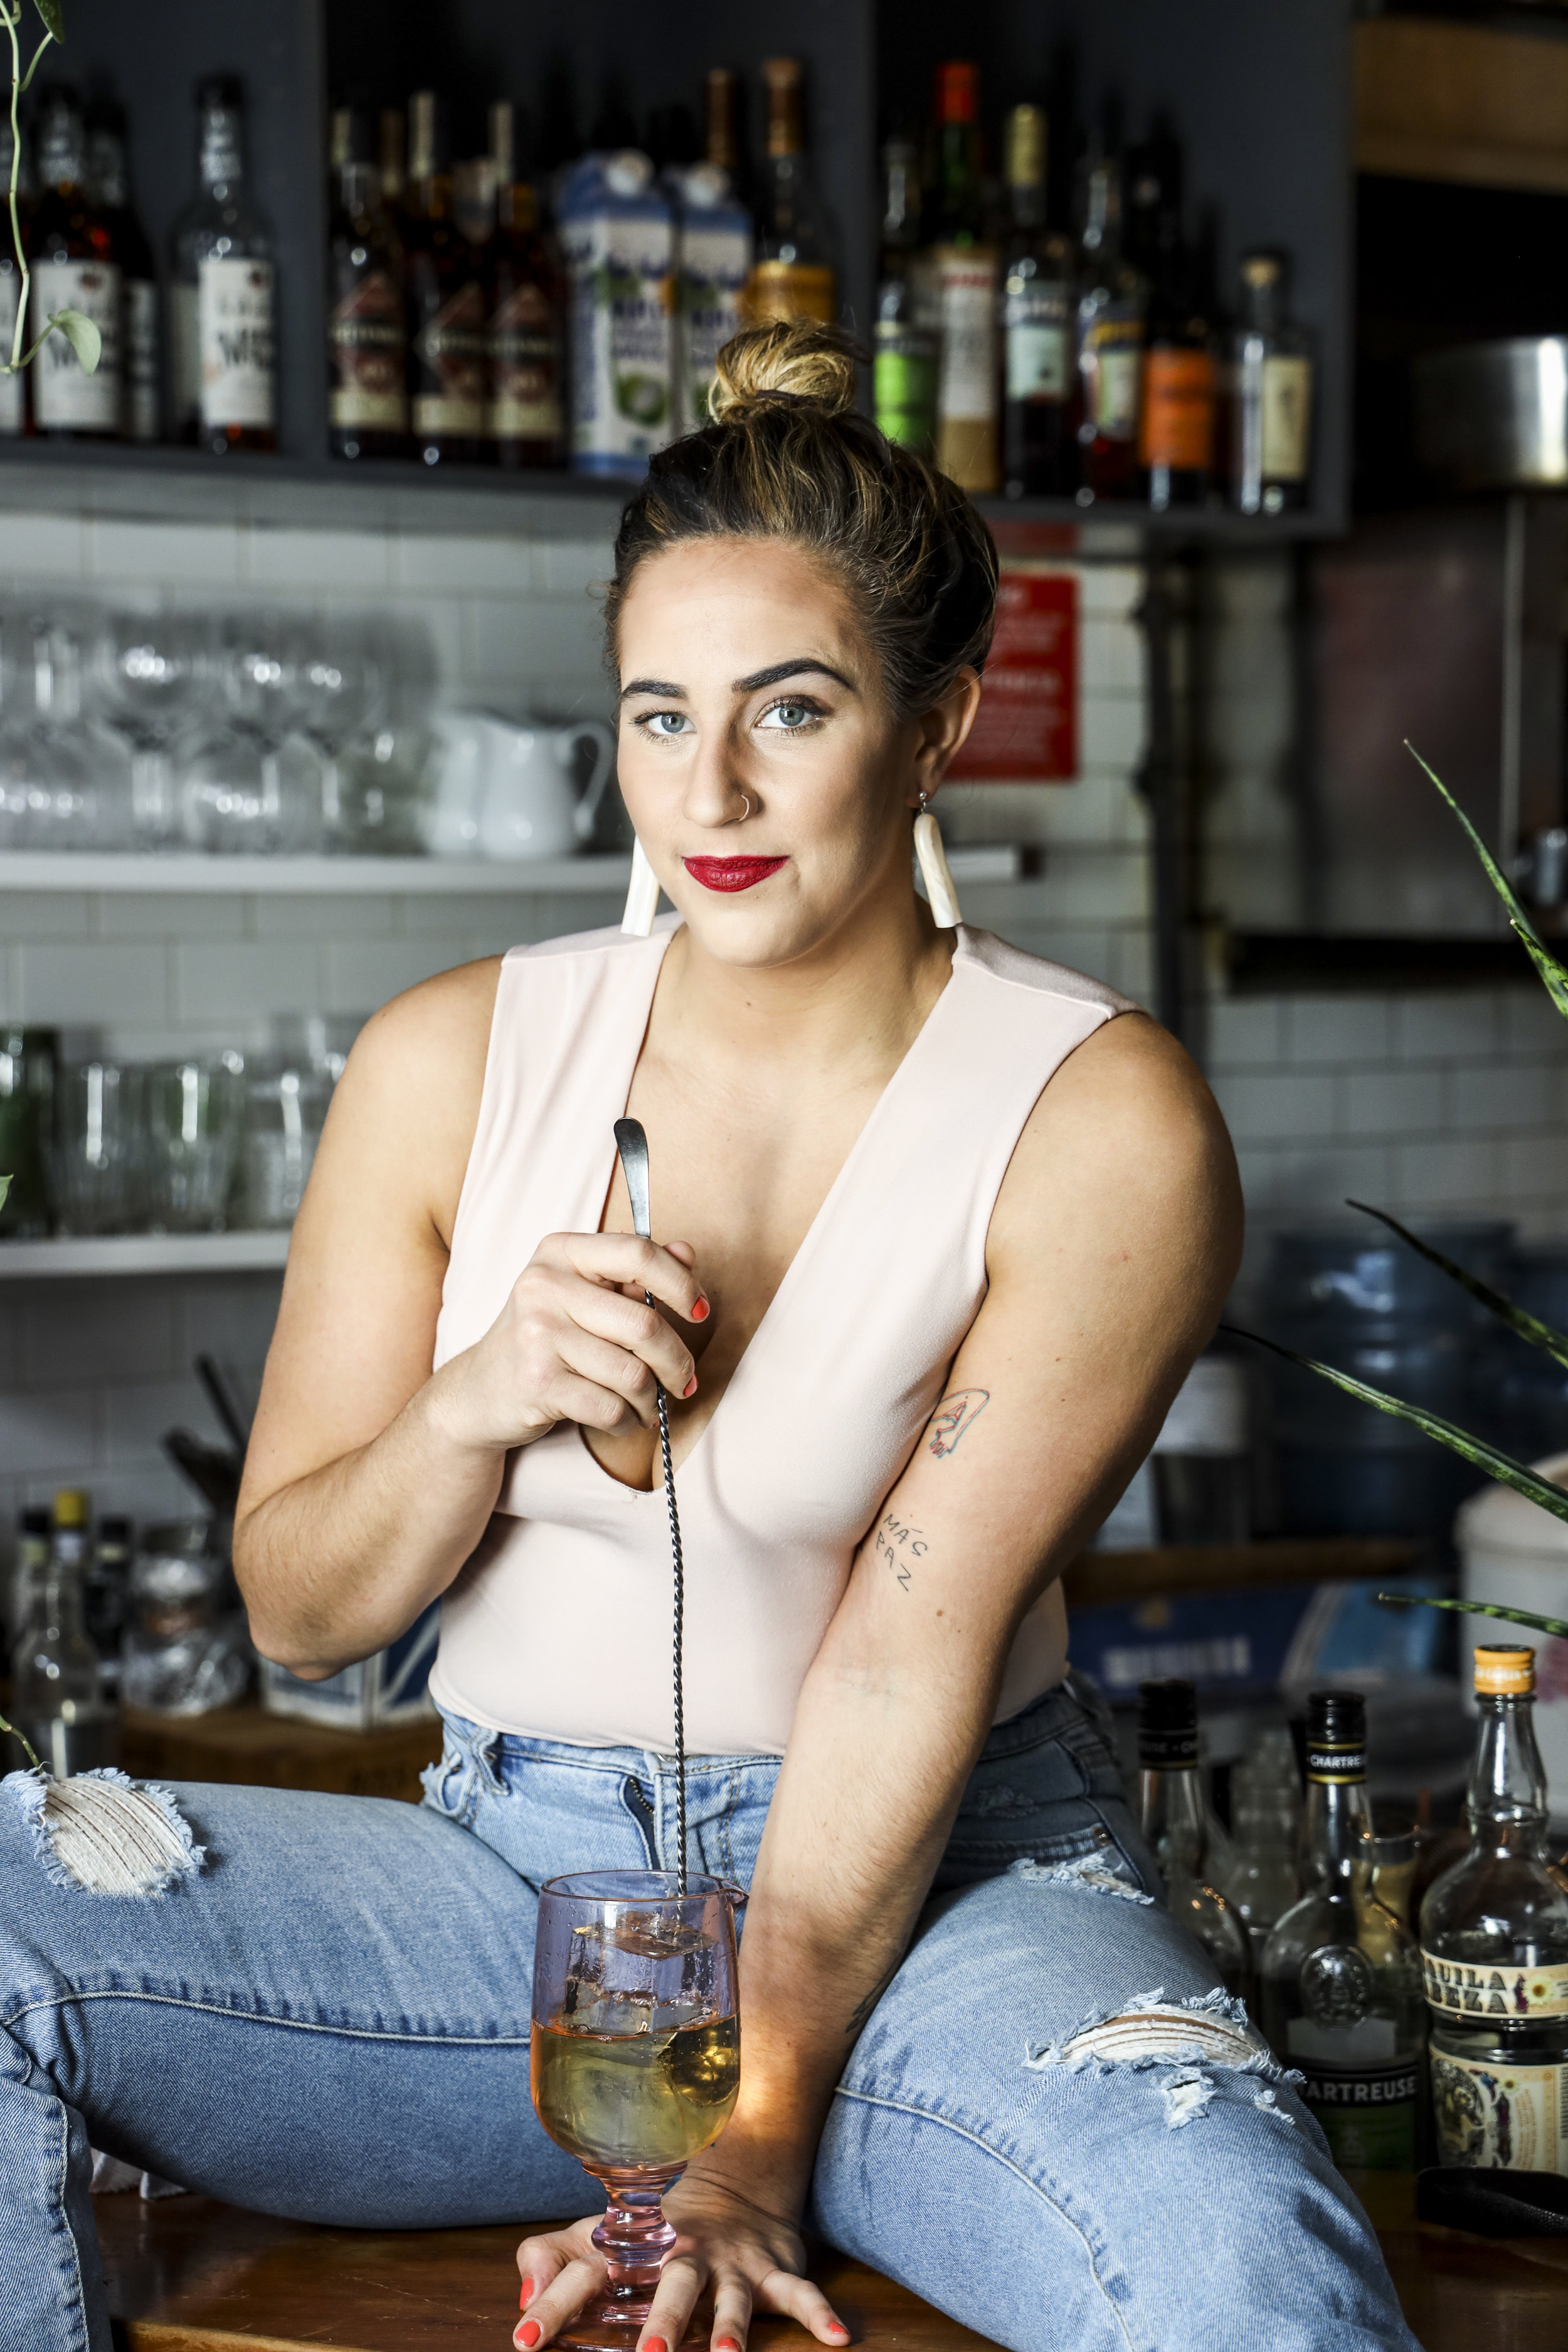 Carlie Steiner has a lot to say, America, and she's speaking out loud, one cocktail at a time.